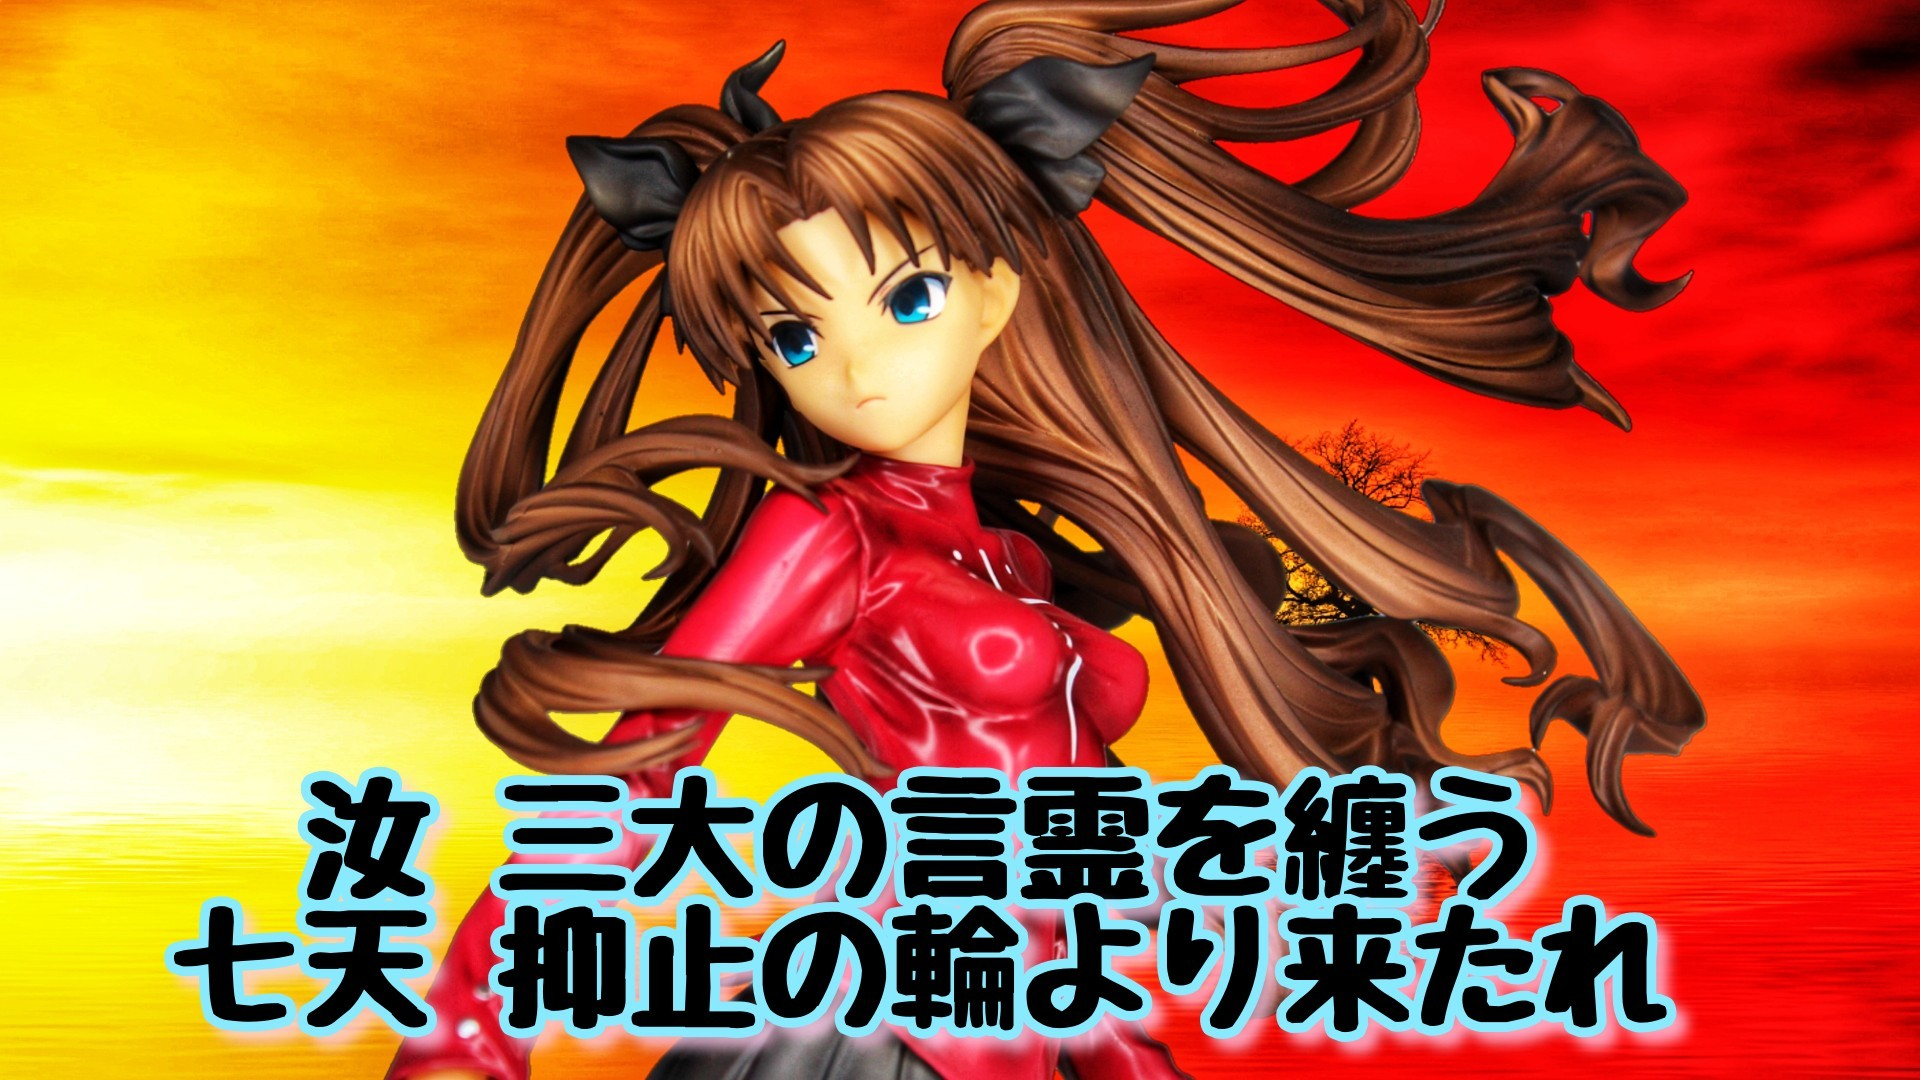 [Fate/stay night Unlimited Blade Works] RIN TOHSAKA Figure review (GOOD SMILE COMPANY) - 天地無用(小包届き過ぎ)